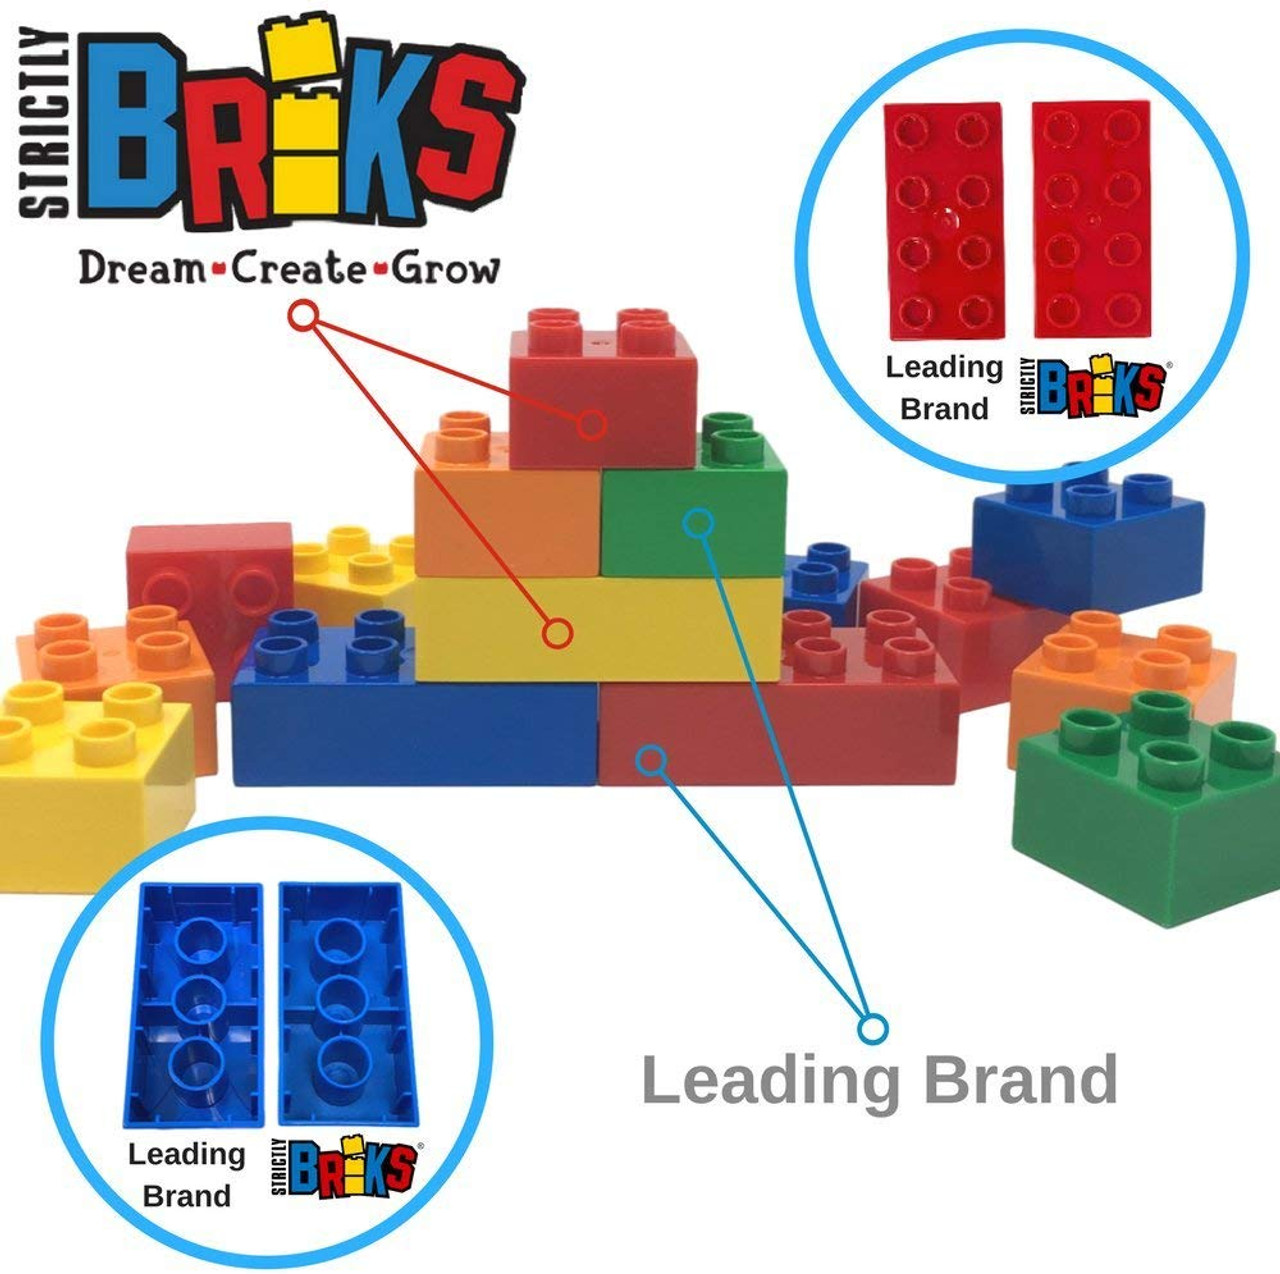 Strictly Briks Classic Bricks 96 Piece 2x4 Black Building Brick Creative Play Set 100/% Compatible with All Major Brick Brands